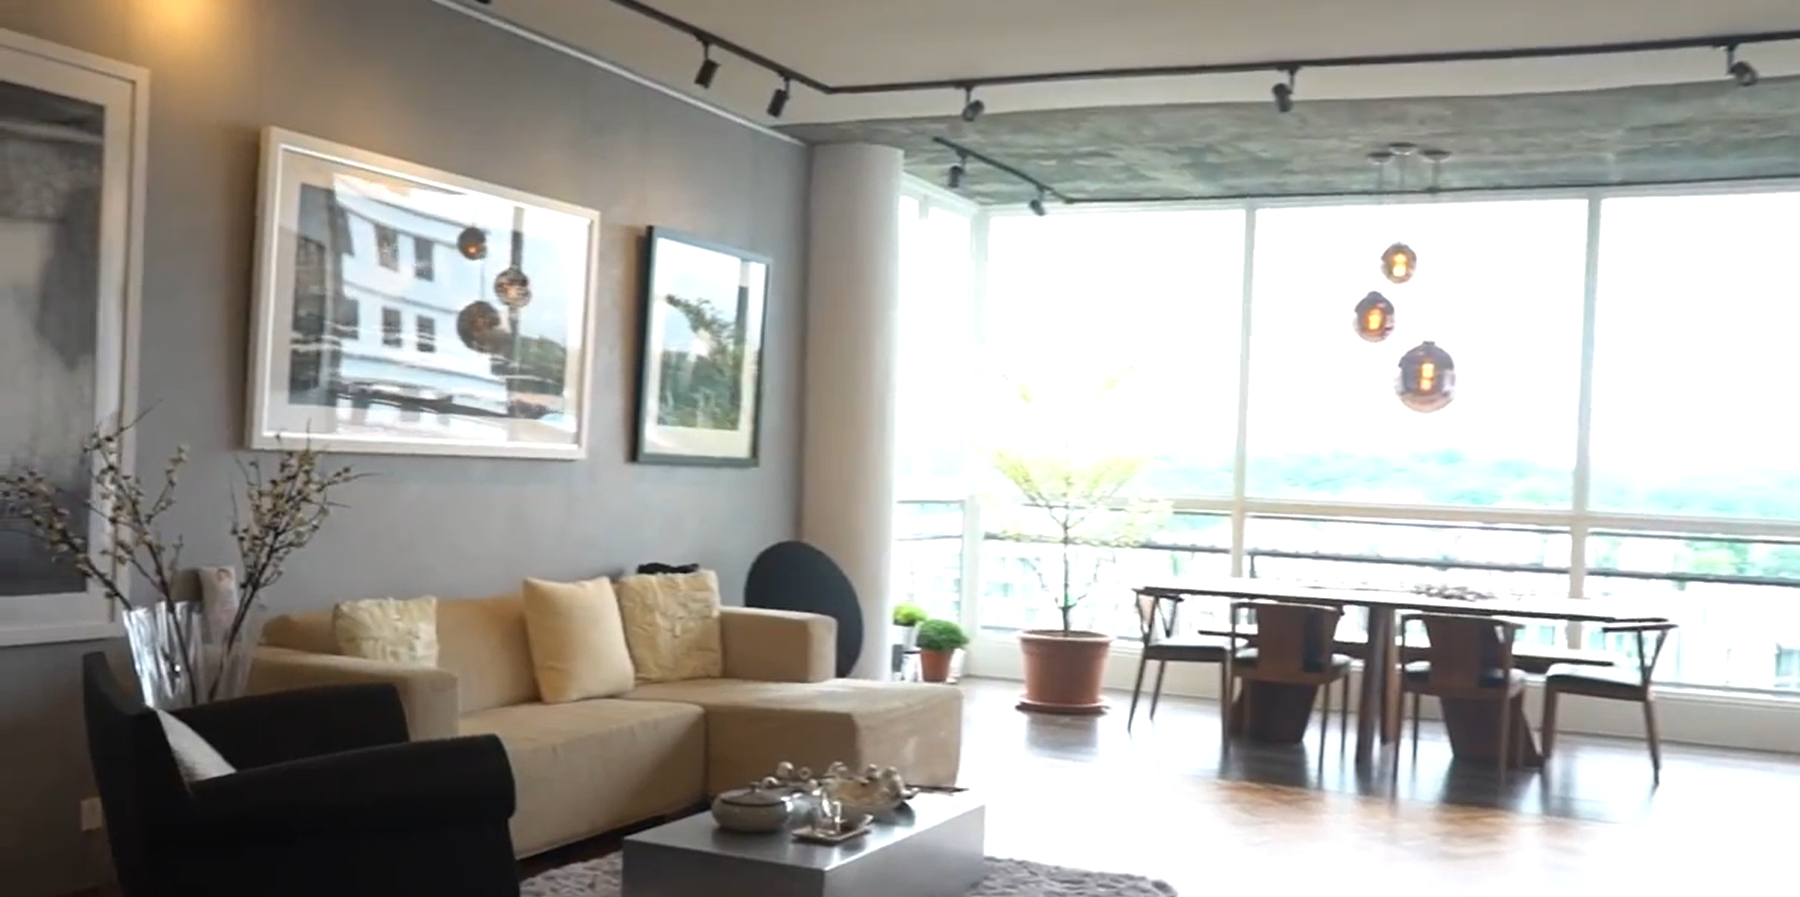 Interior Design Singapore| Minimal Artistic Themed Home (Free Space Intent)